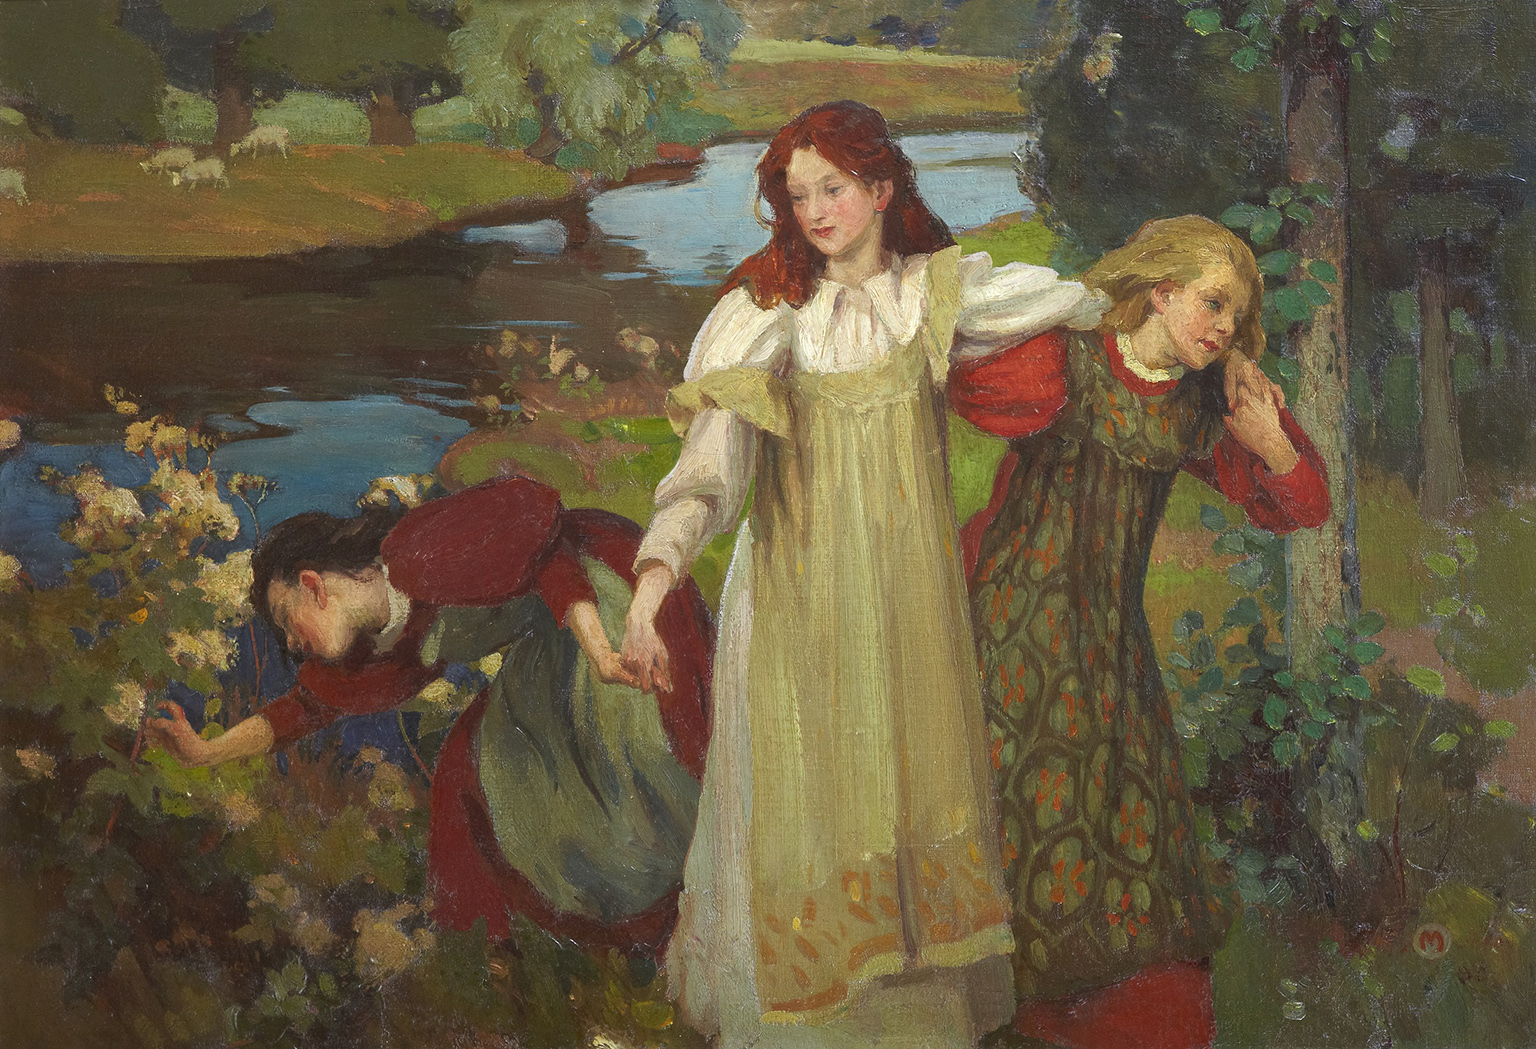 Charles H. Mackie, There were Three Maidens pu'd a Flower (By the Bonnie Banks o' Fordie), c.1897.